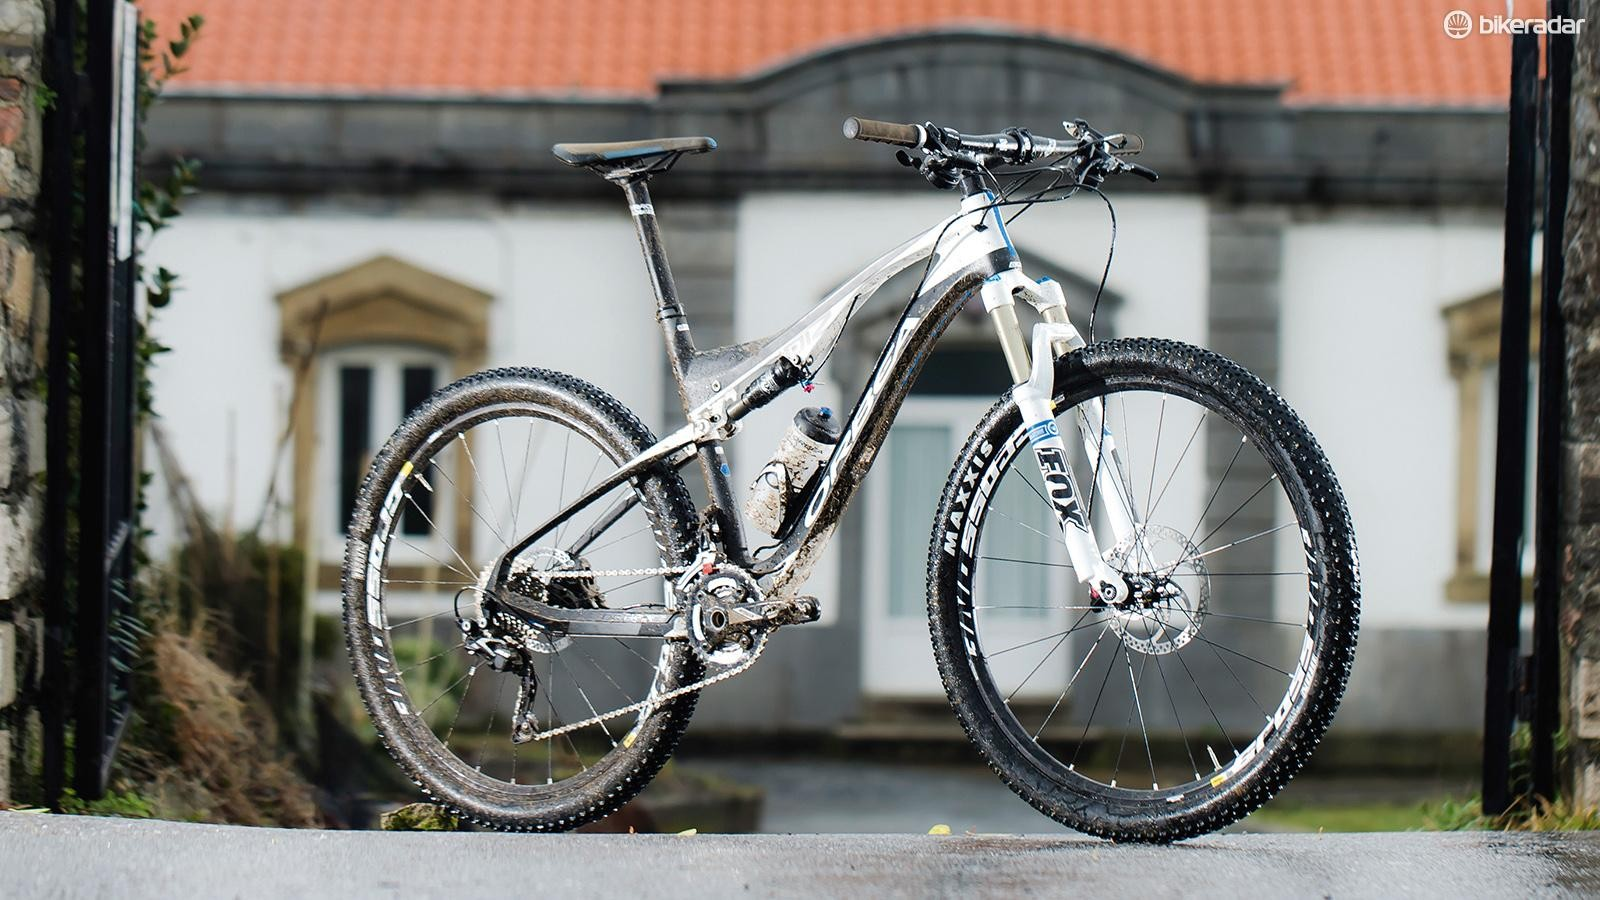 The Orbea Oiz M50, on home turf (and spattered with home turf)